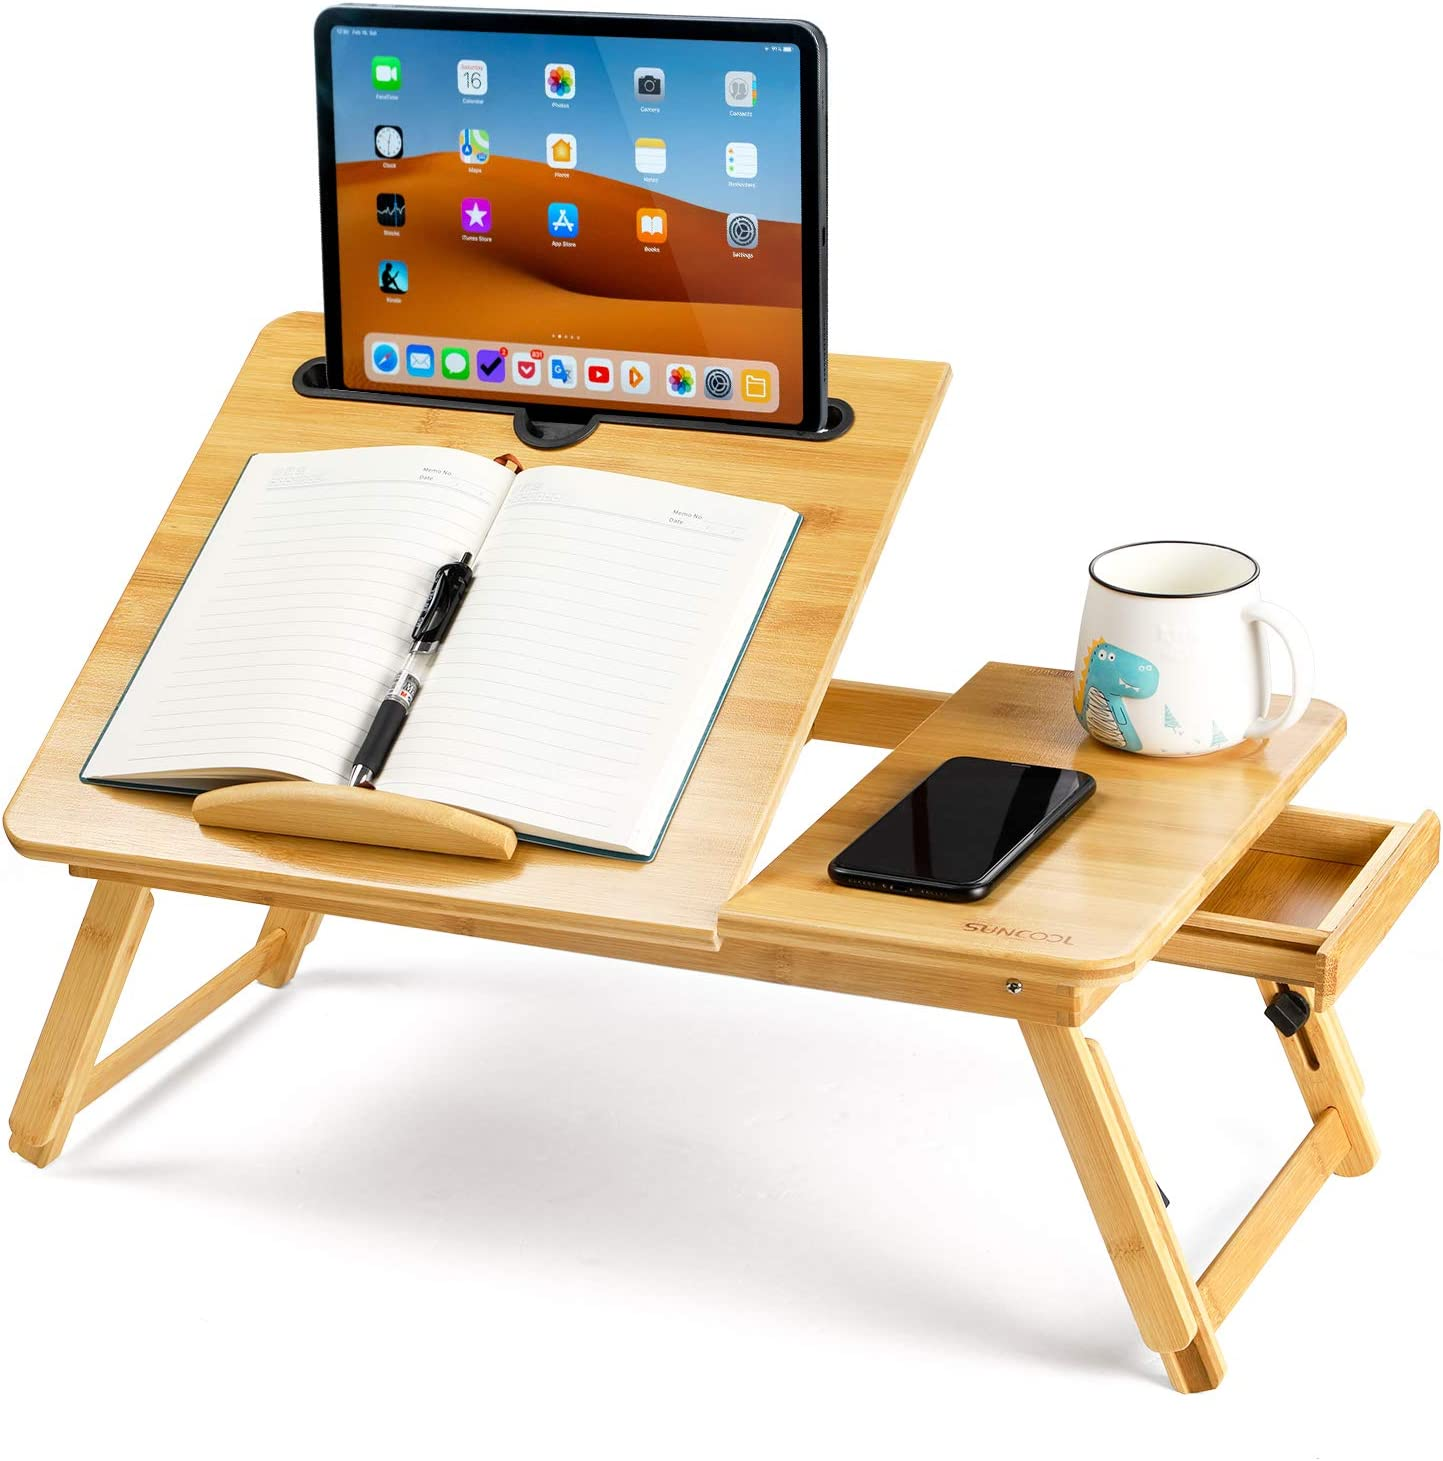 EIGSO Laptop Bed Desk Table Tray with Foldable Pull Down Legs and Storage Drawer, Multi-Position Adjustable Tilt Surface for Computer iPad Book Study Writing Reading and Eating